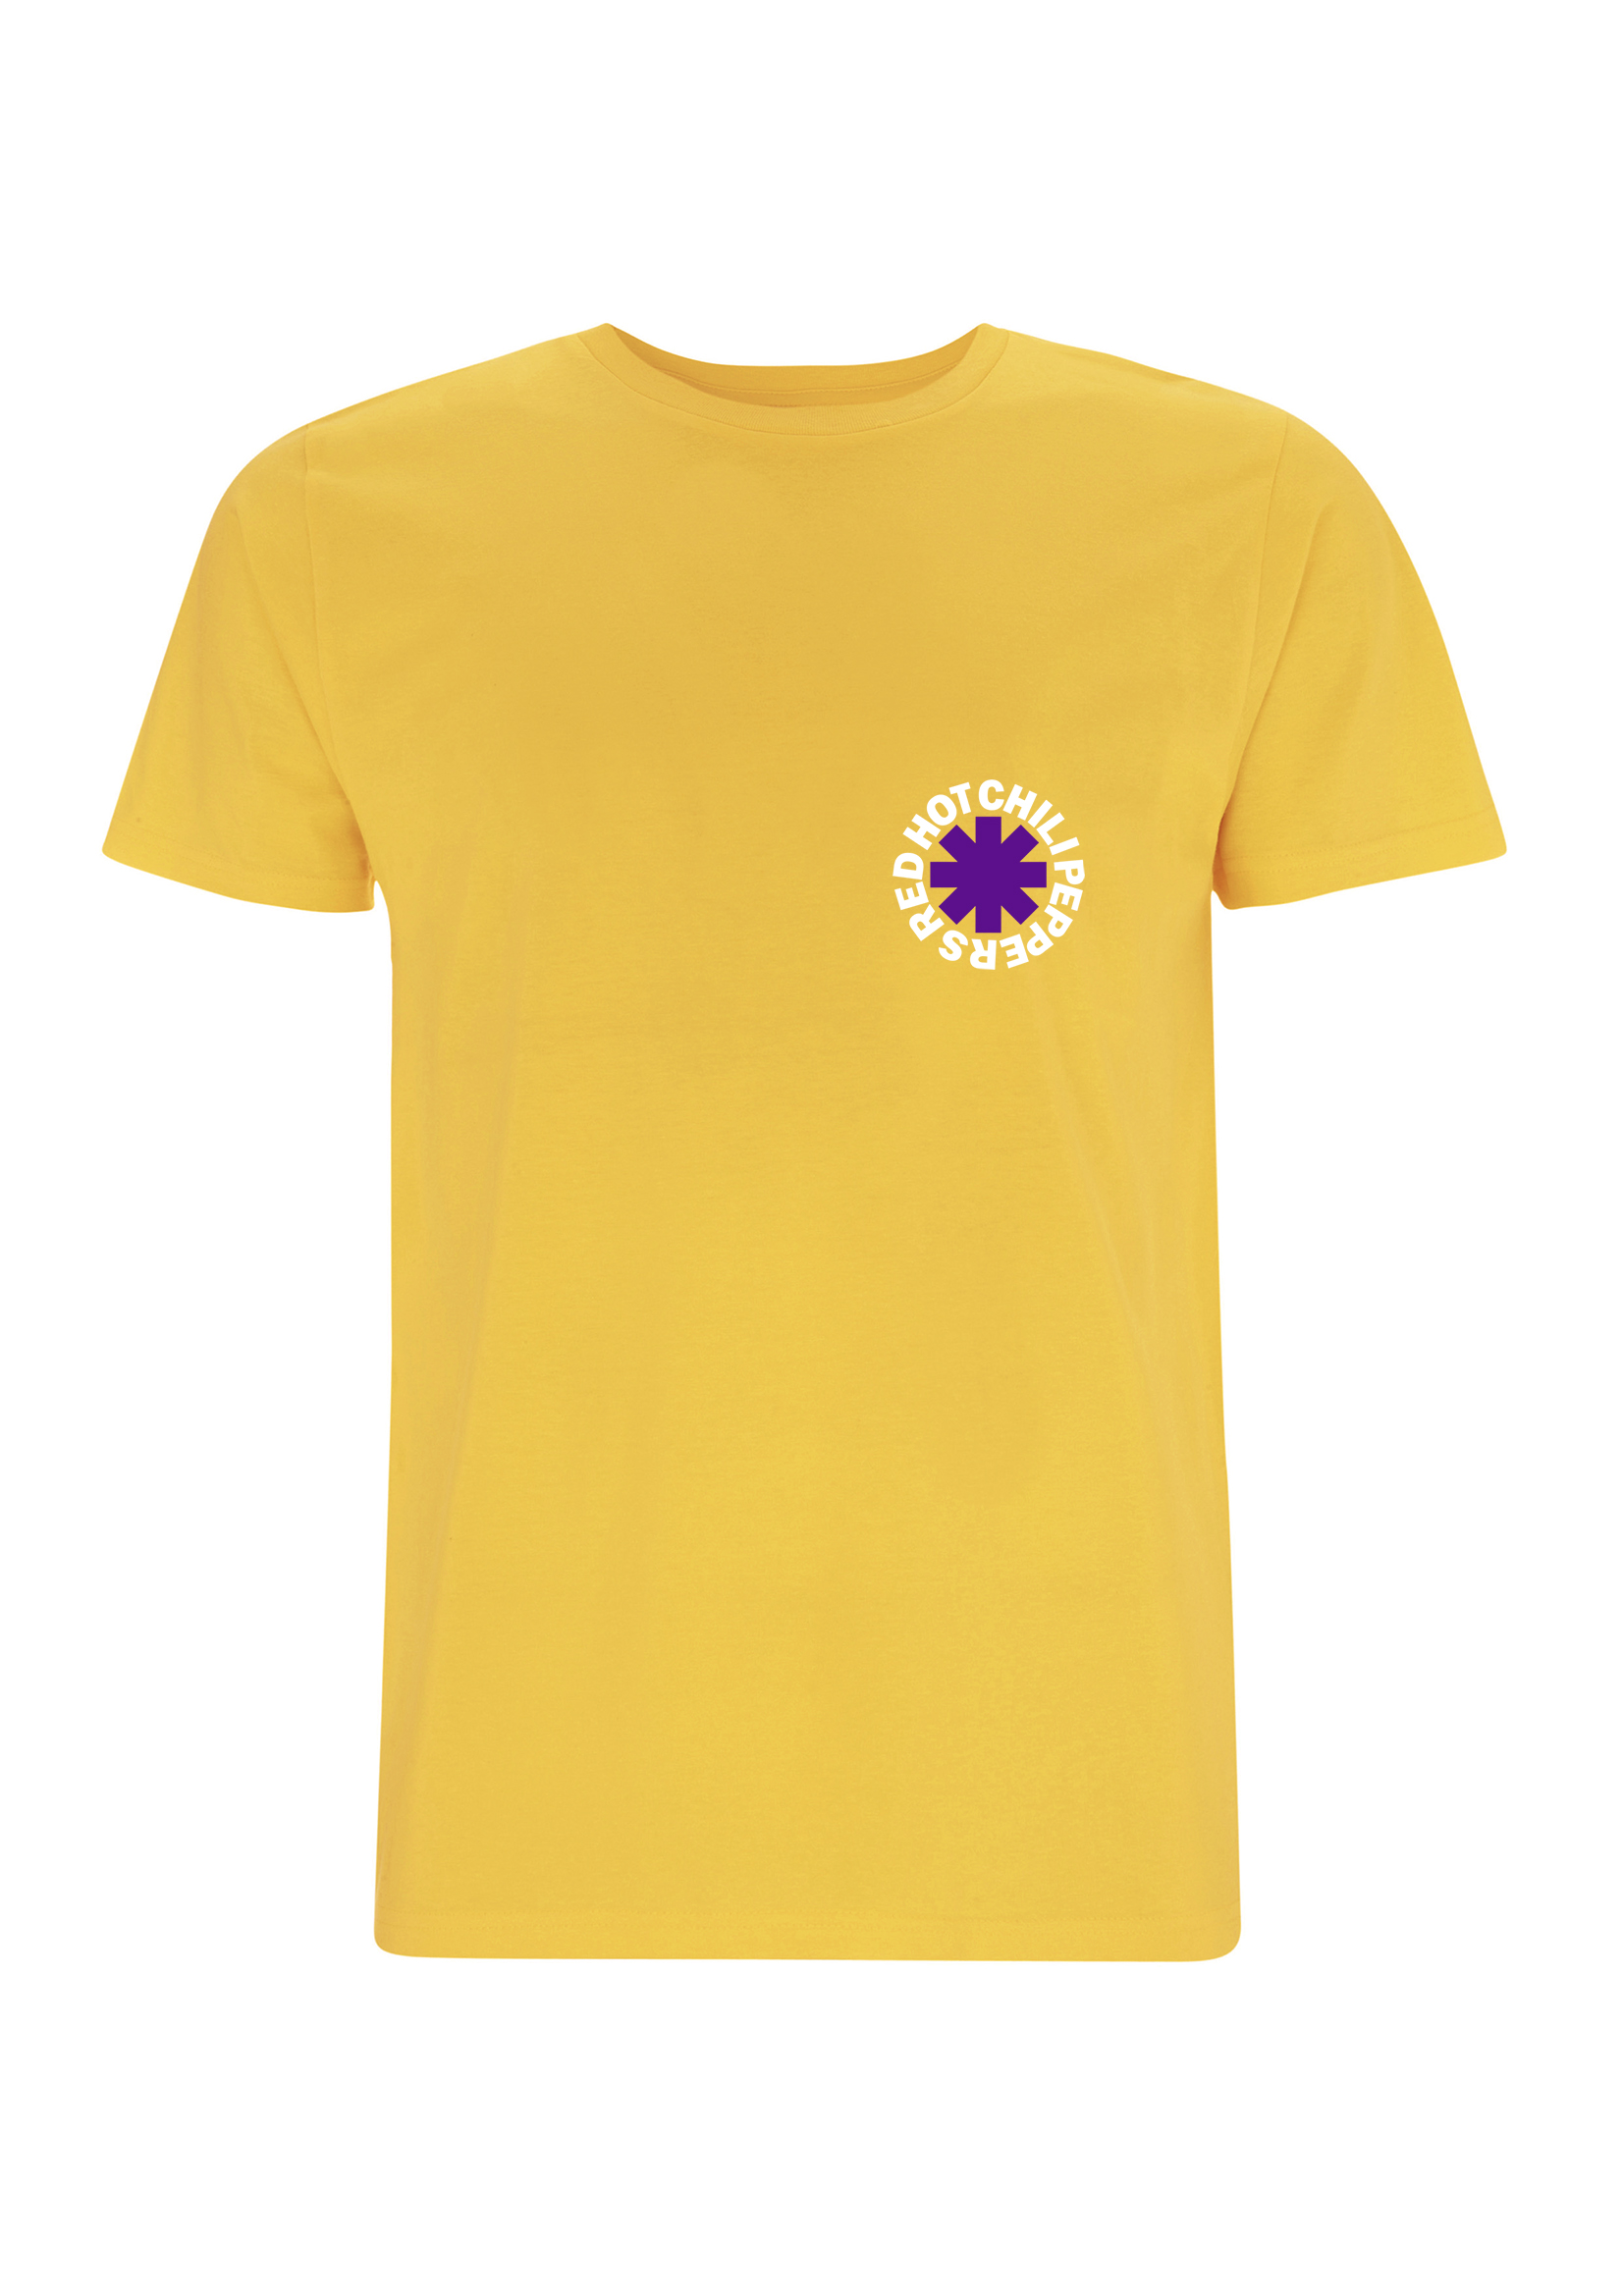 Los Chili - Yellow Tee - Red Hot Chili Peppers